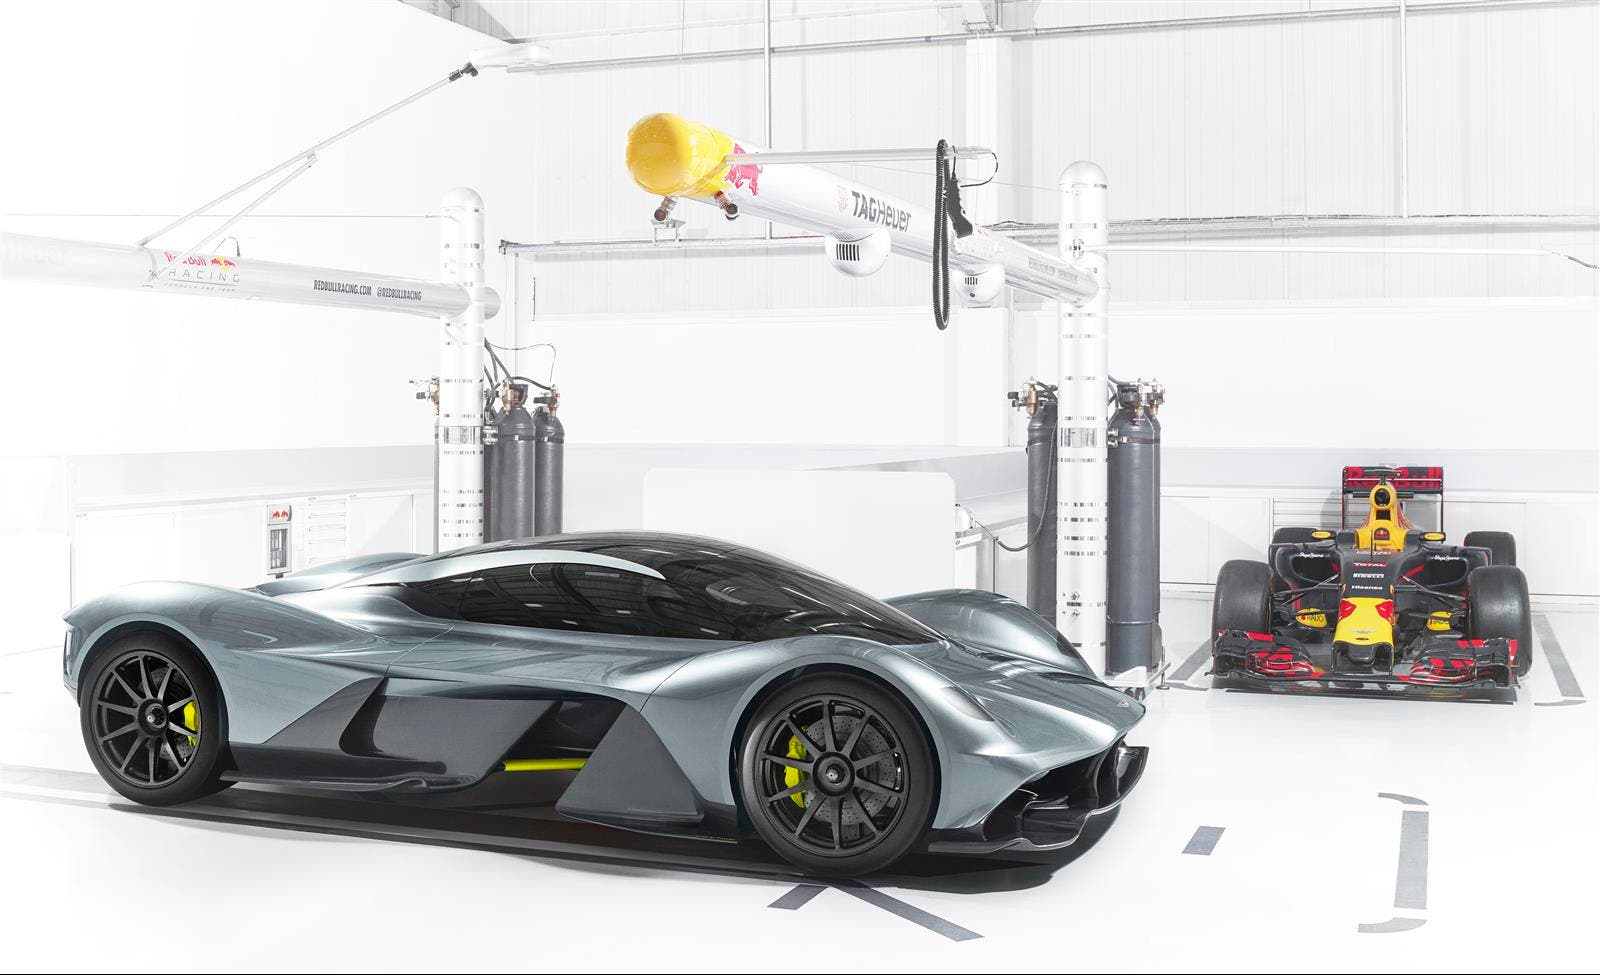 Aston Martin Valkyrie Hybrid Is Exotic First For Company | CleanTechnica